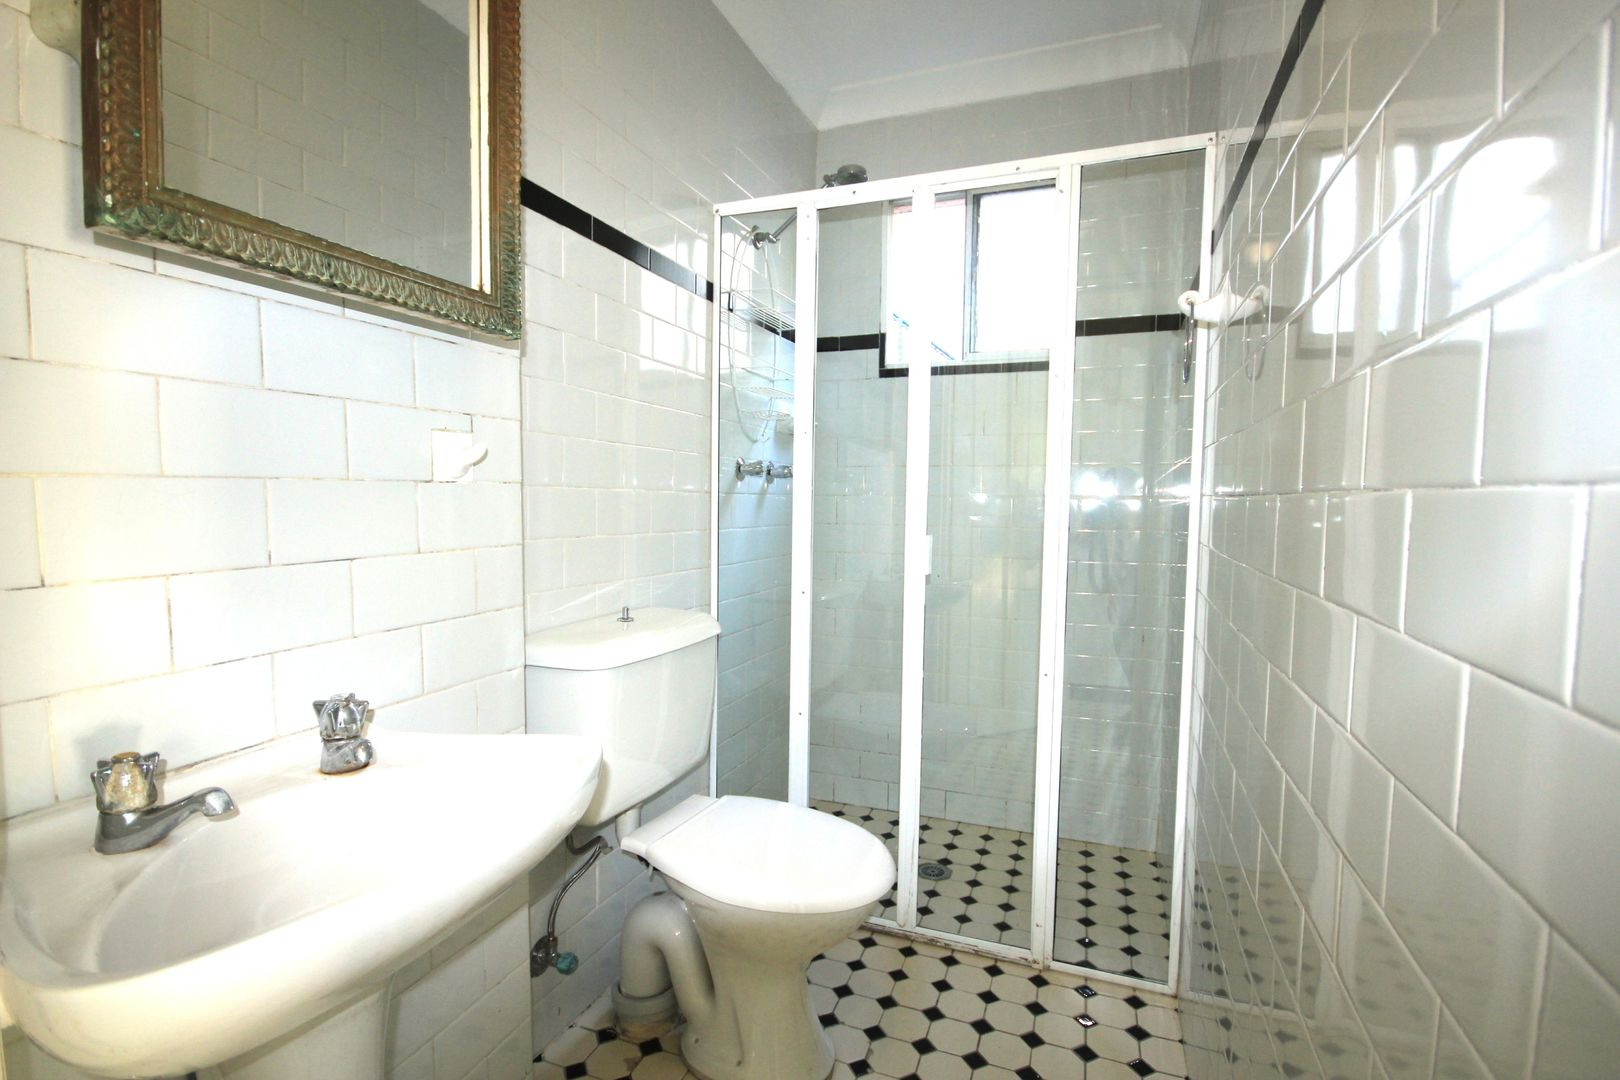 2/282 Enmore Road, Marrickville NSW 2204, Image 1